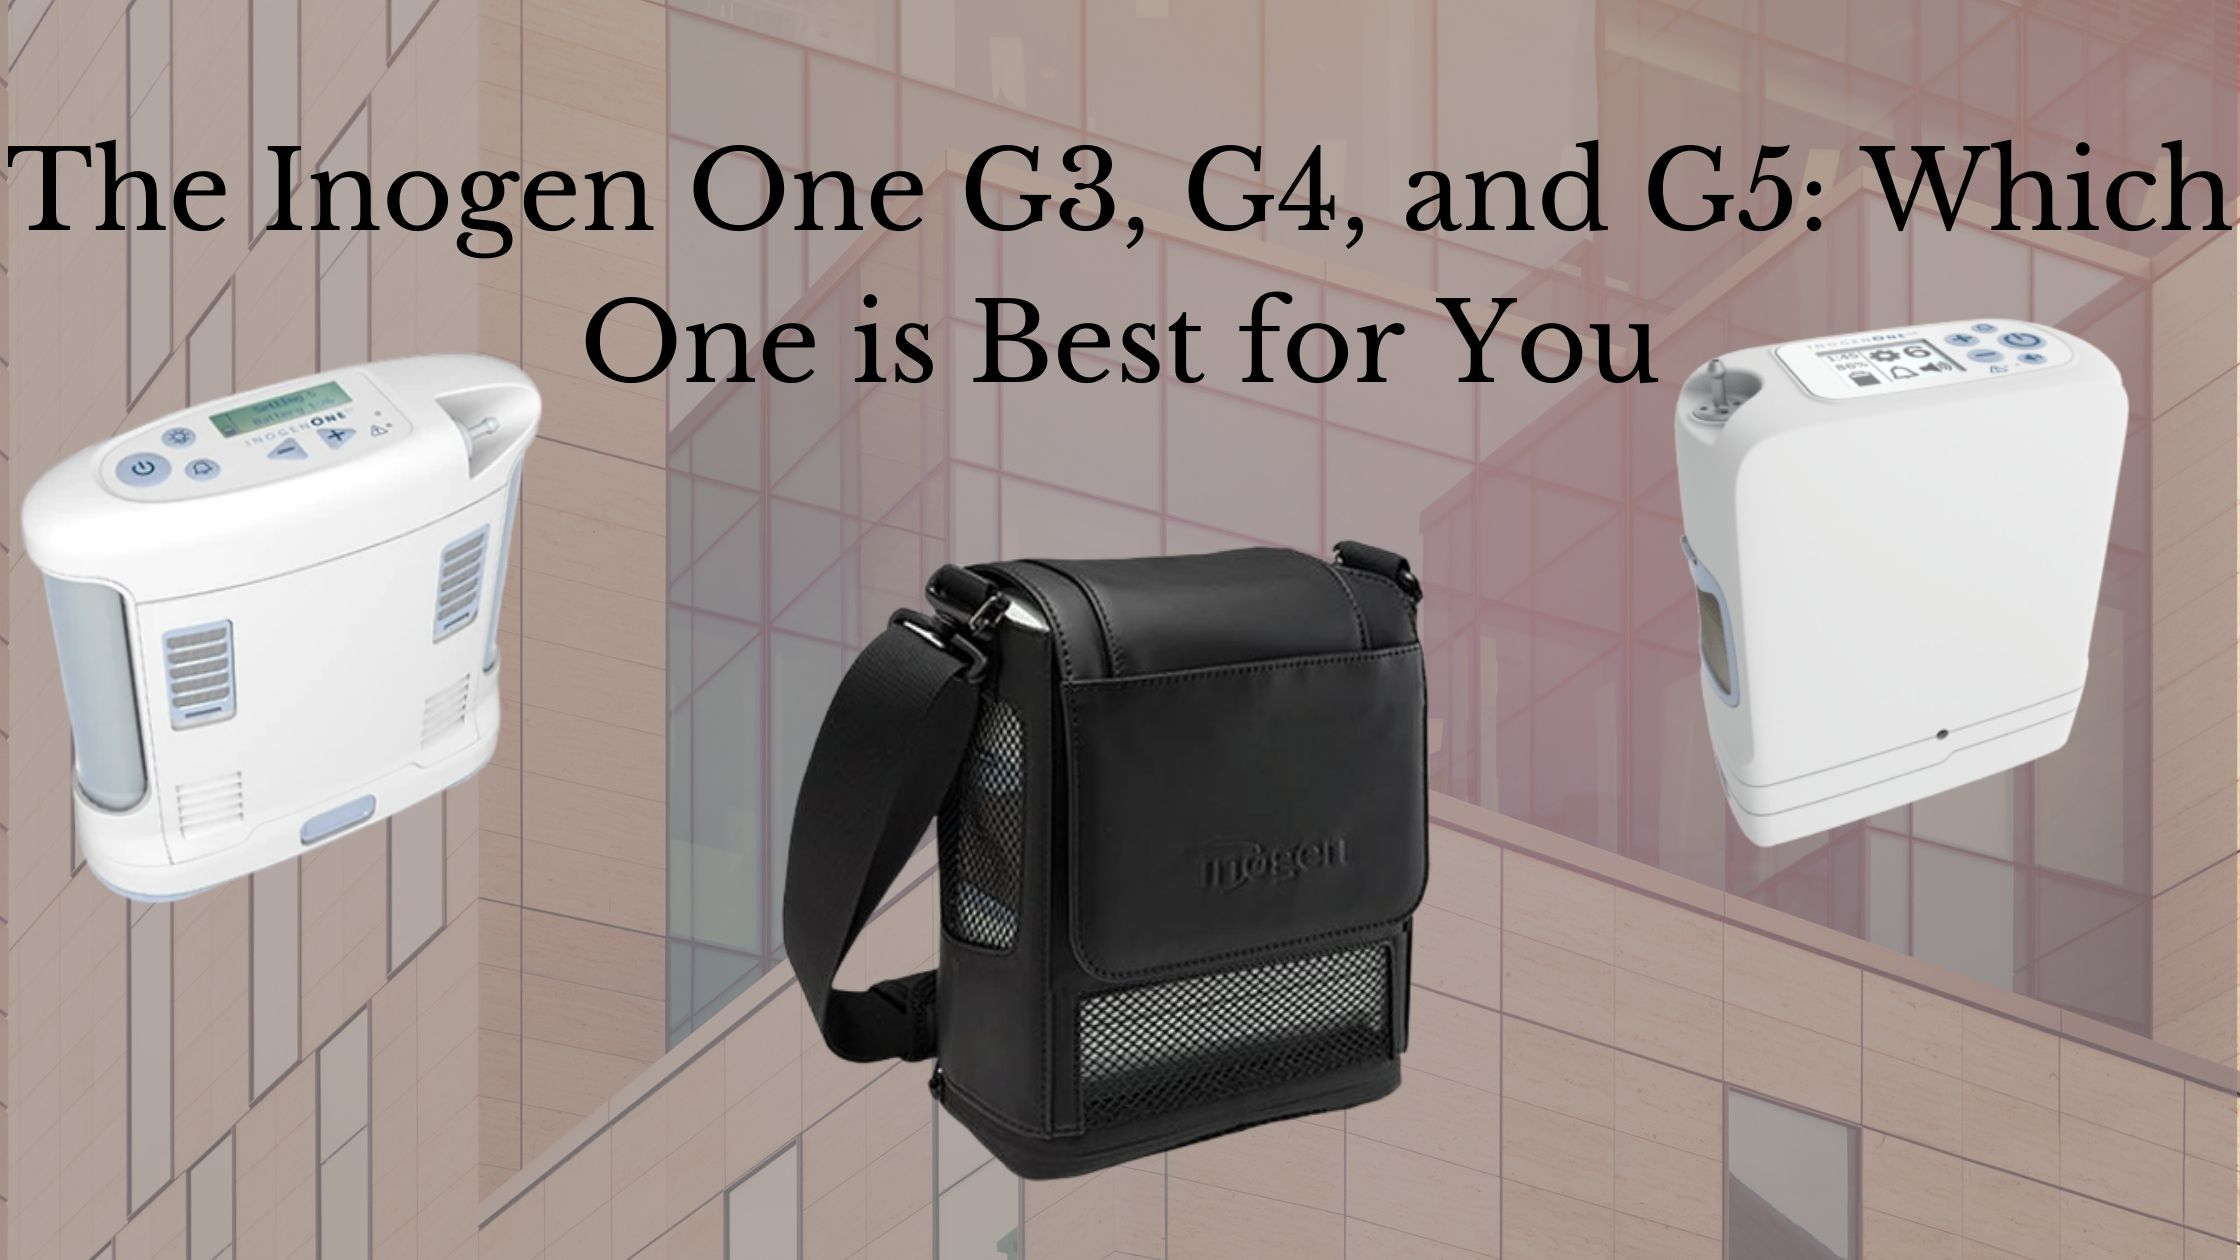 The Inogen One G3, G4, and G5_ Which One is Best for You